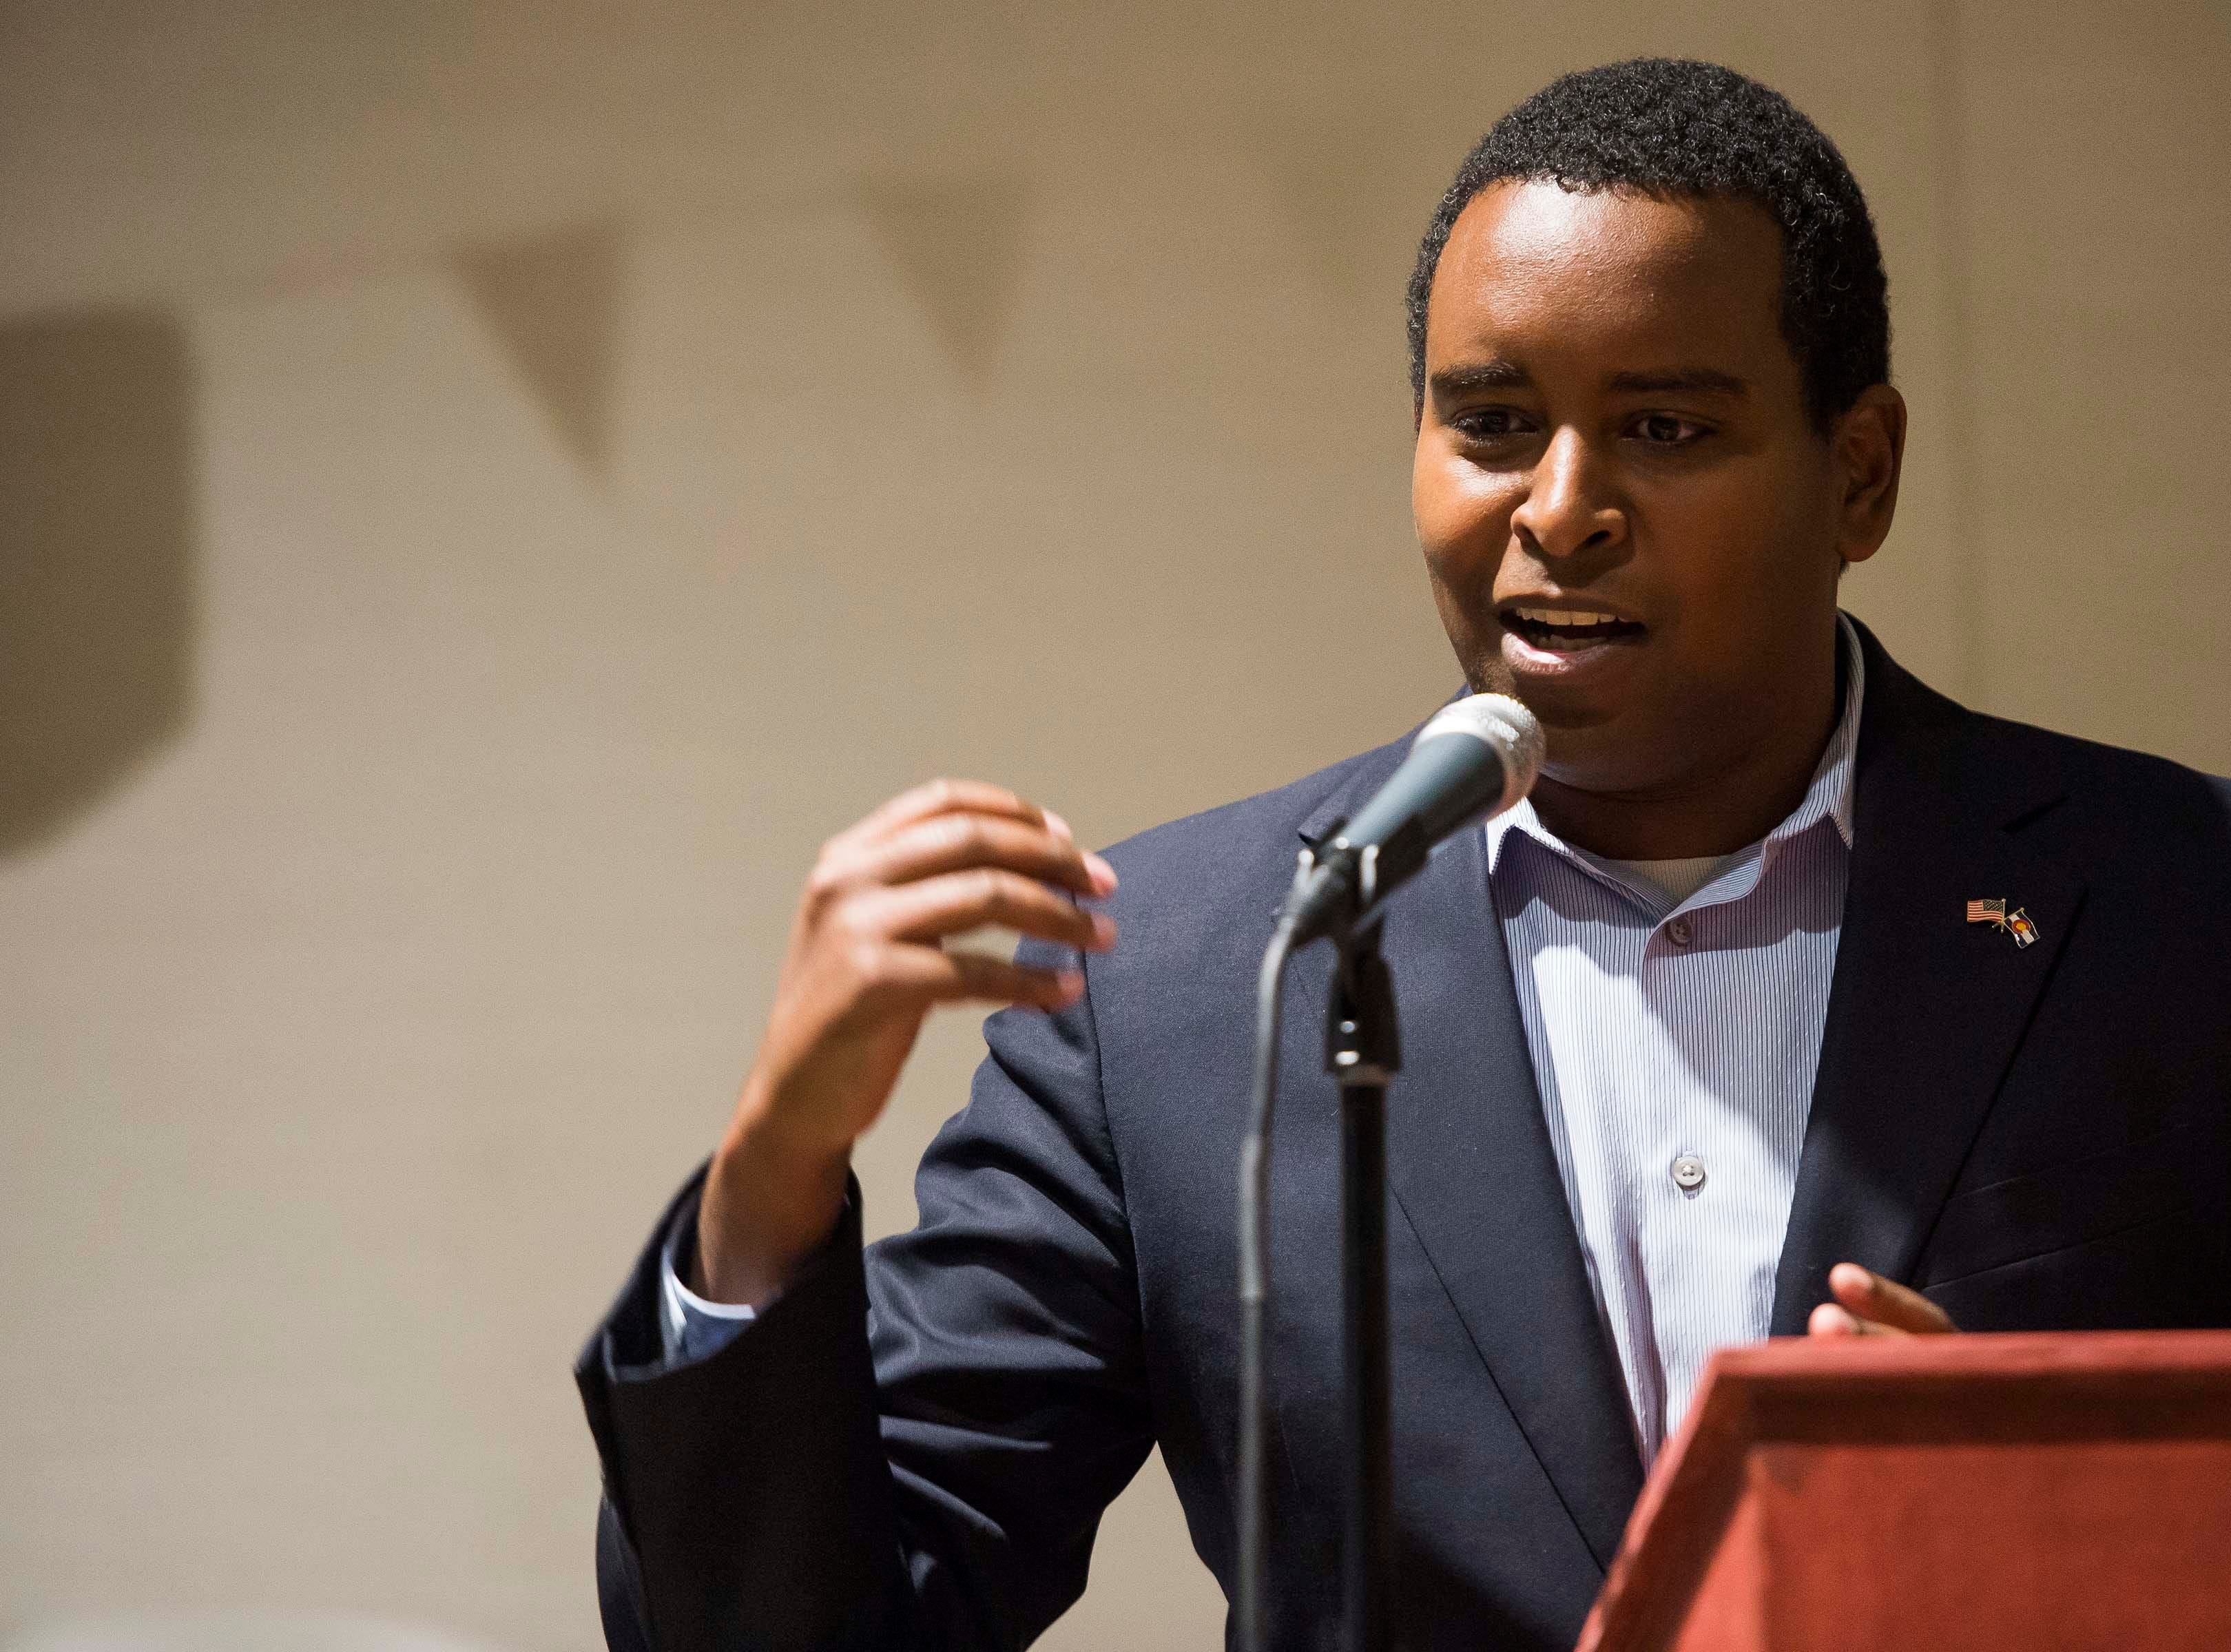 Colorado's 2nd Congressional District Democratic nominee Joe Neguse participates in a debate with Republican nominee Peter Yu on Wednesday, Sept. 26, 2018, at the Loveland Classical Schools in Loveland, Colo.